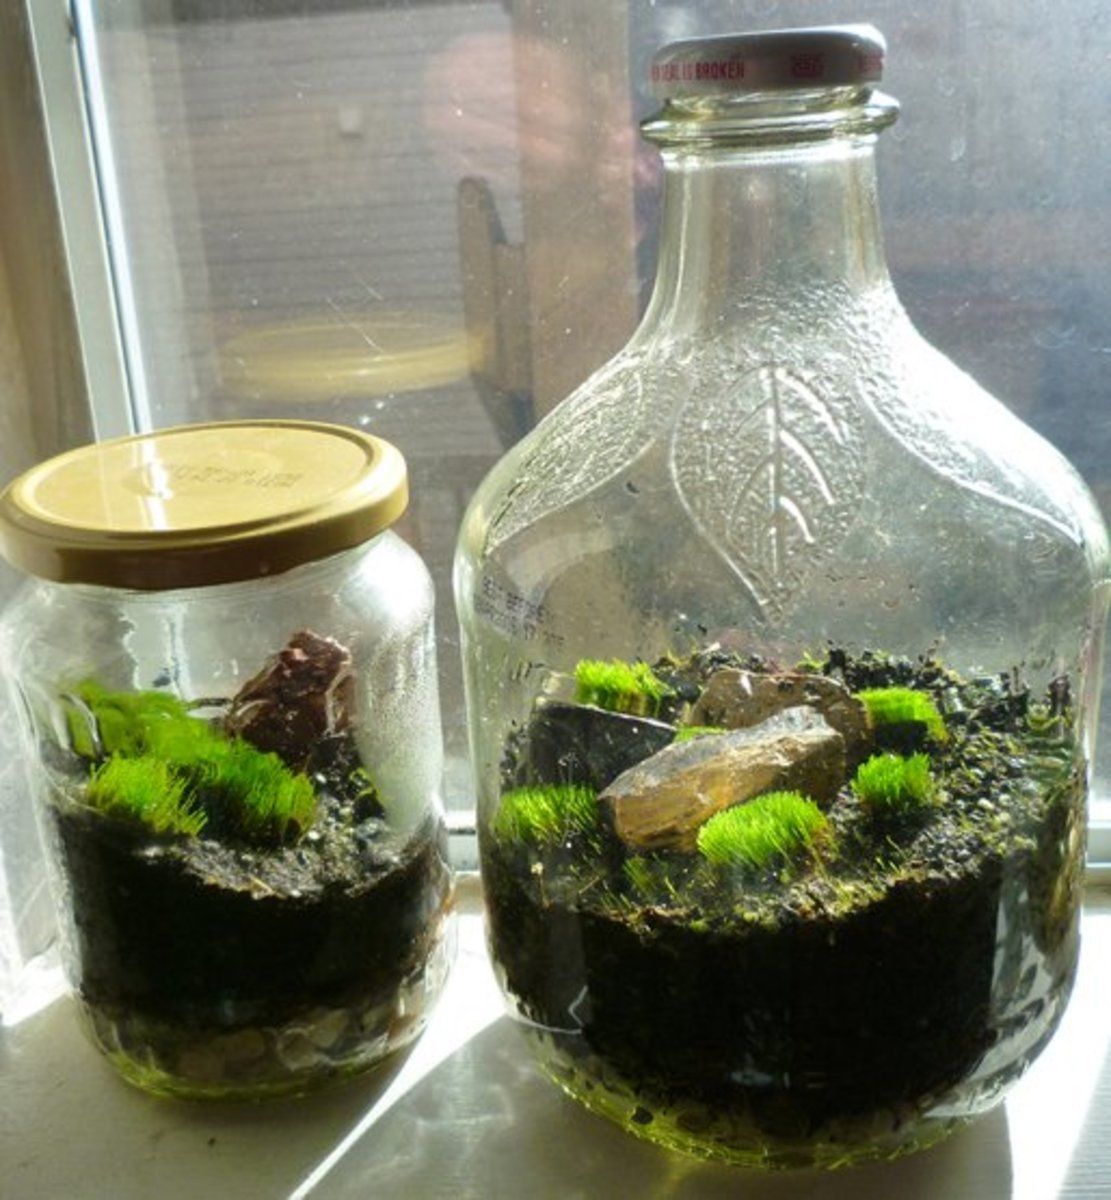 Moss Terrariums in jars. The one on the left was made from an old pickle jar, while the one on the right was constructed from an apple cider glass jug.